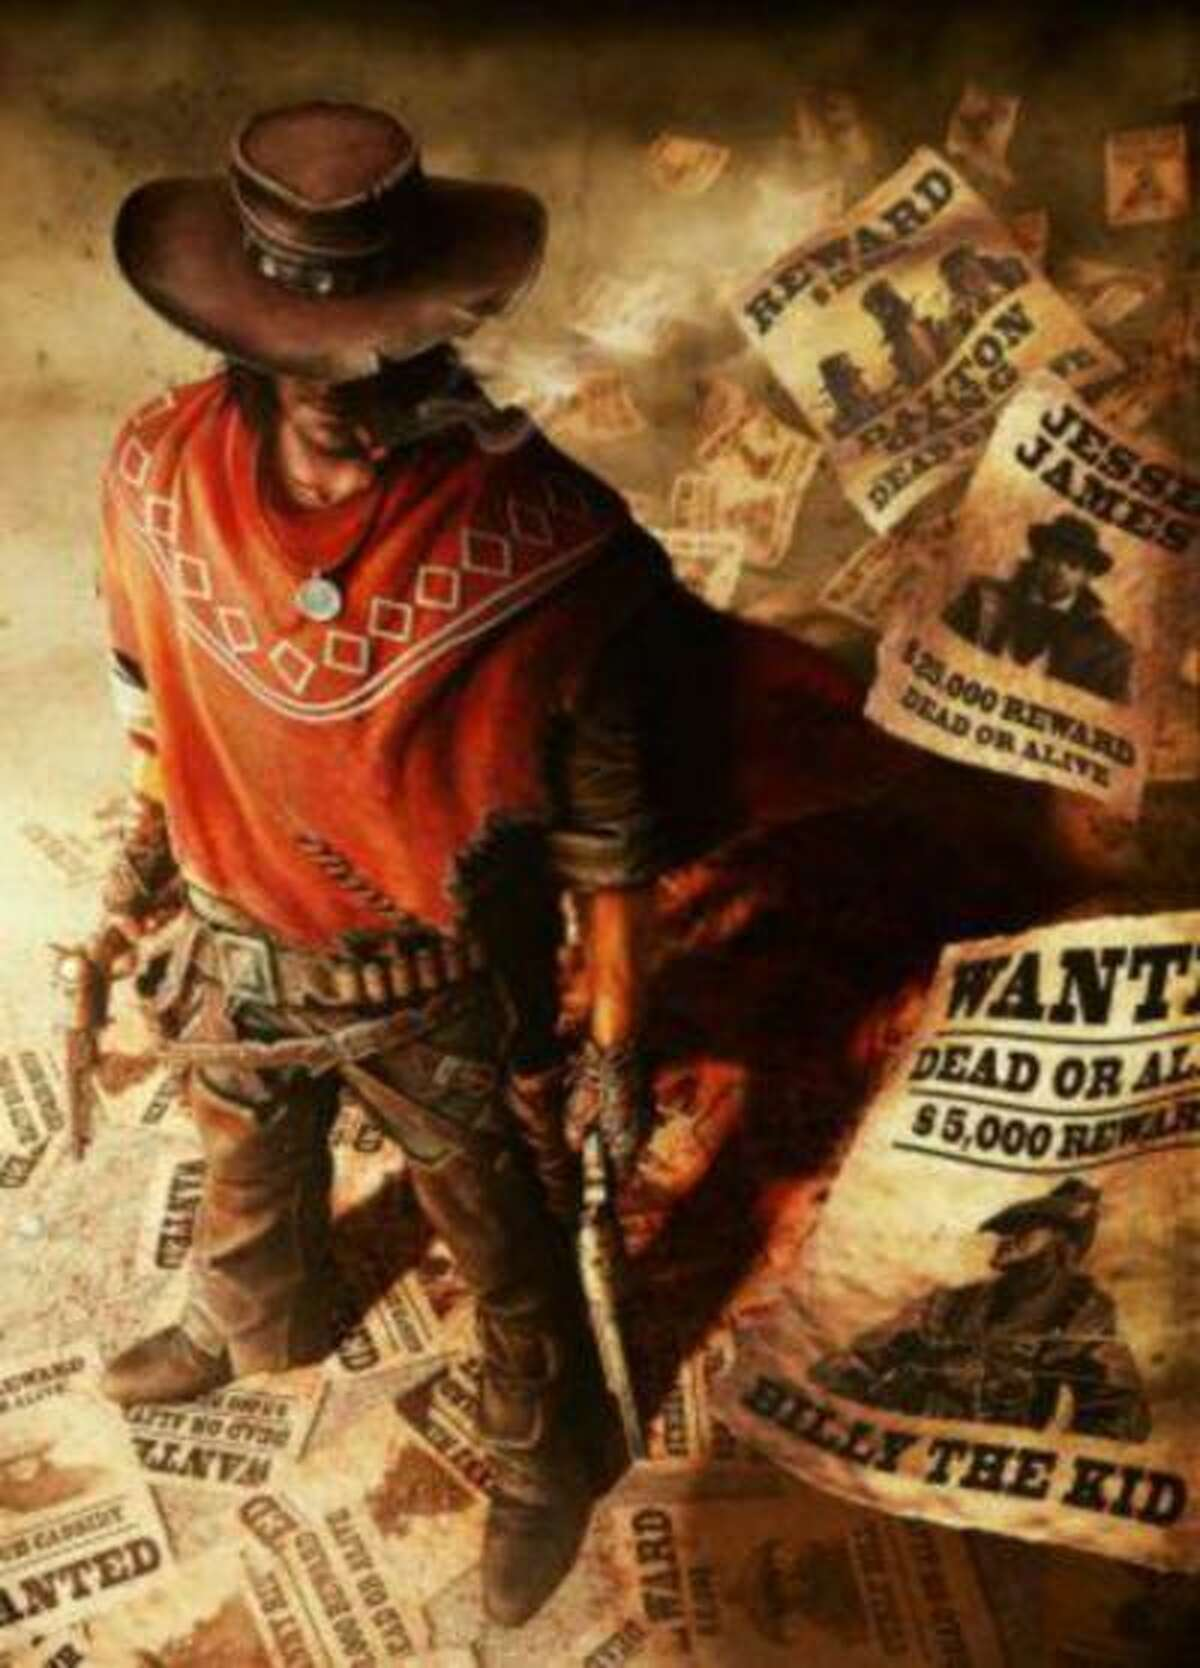 Bounty hunter Silas Greaves has traded bullets with the most famous outlaws from the Wild West.